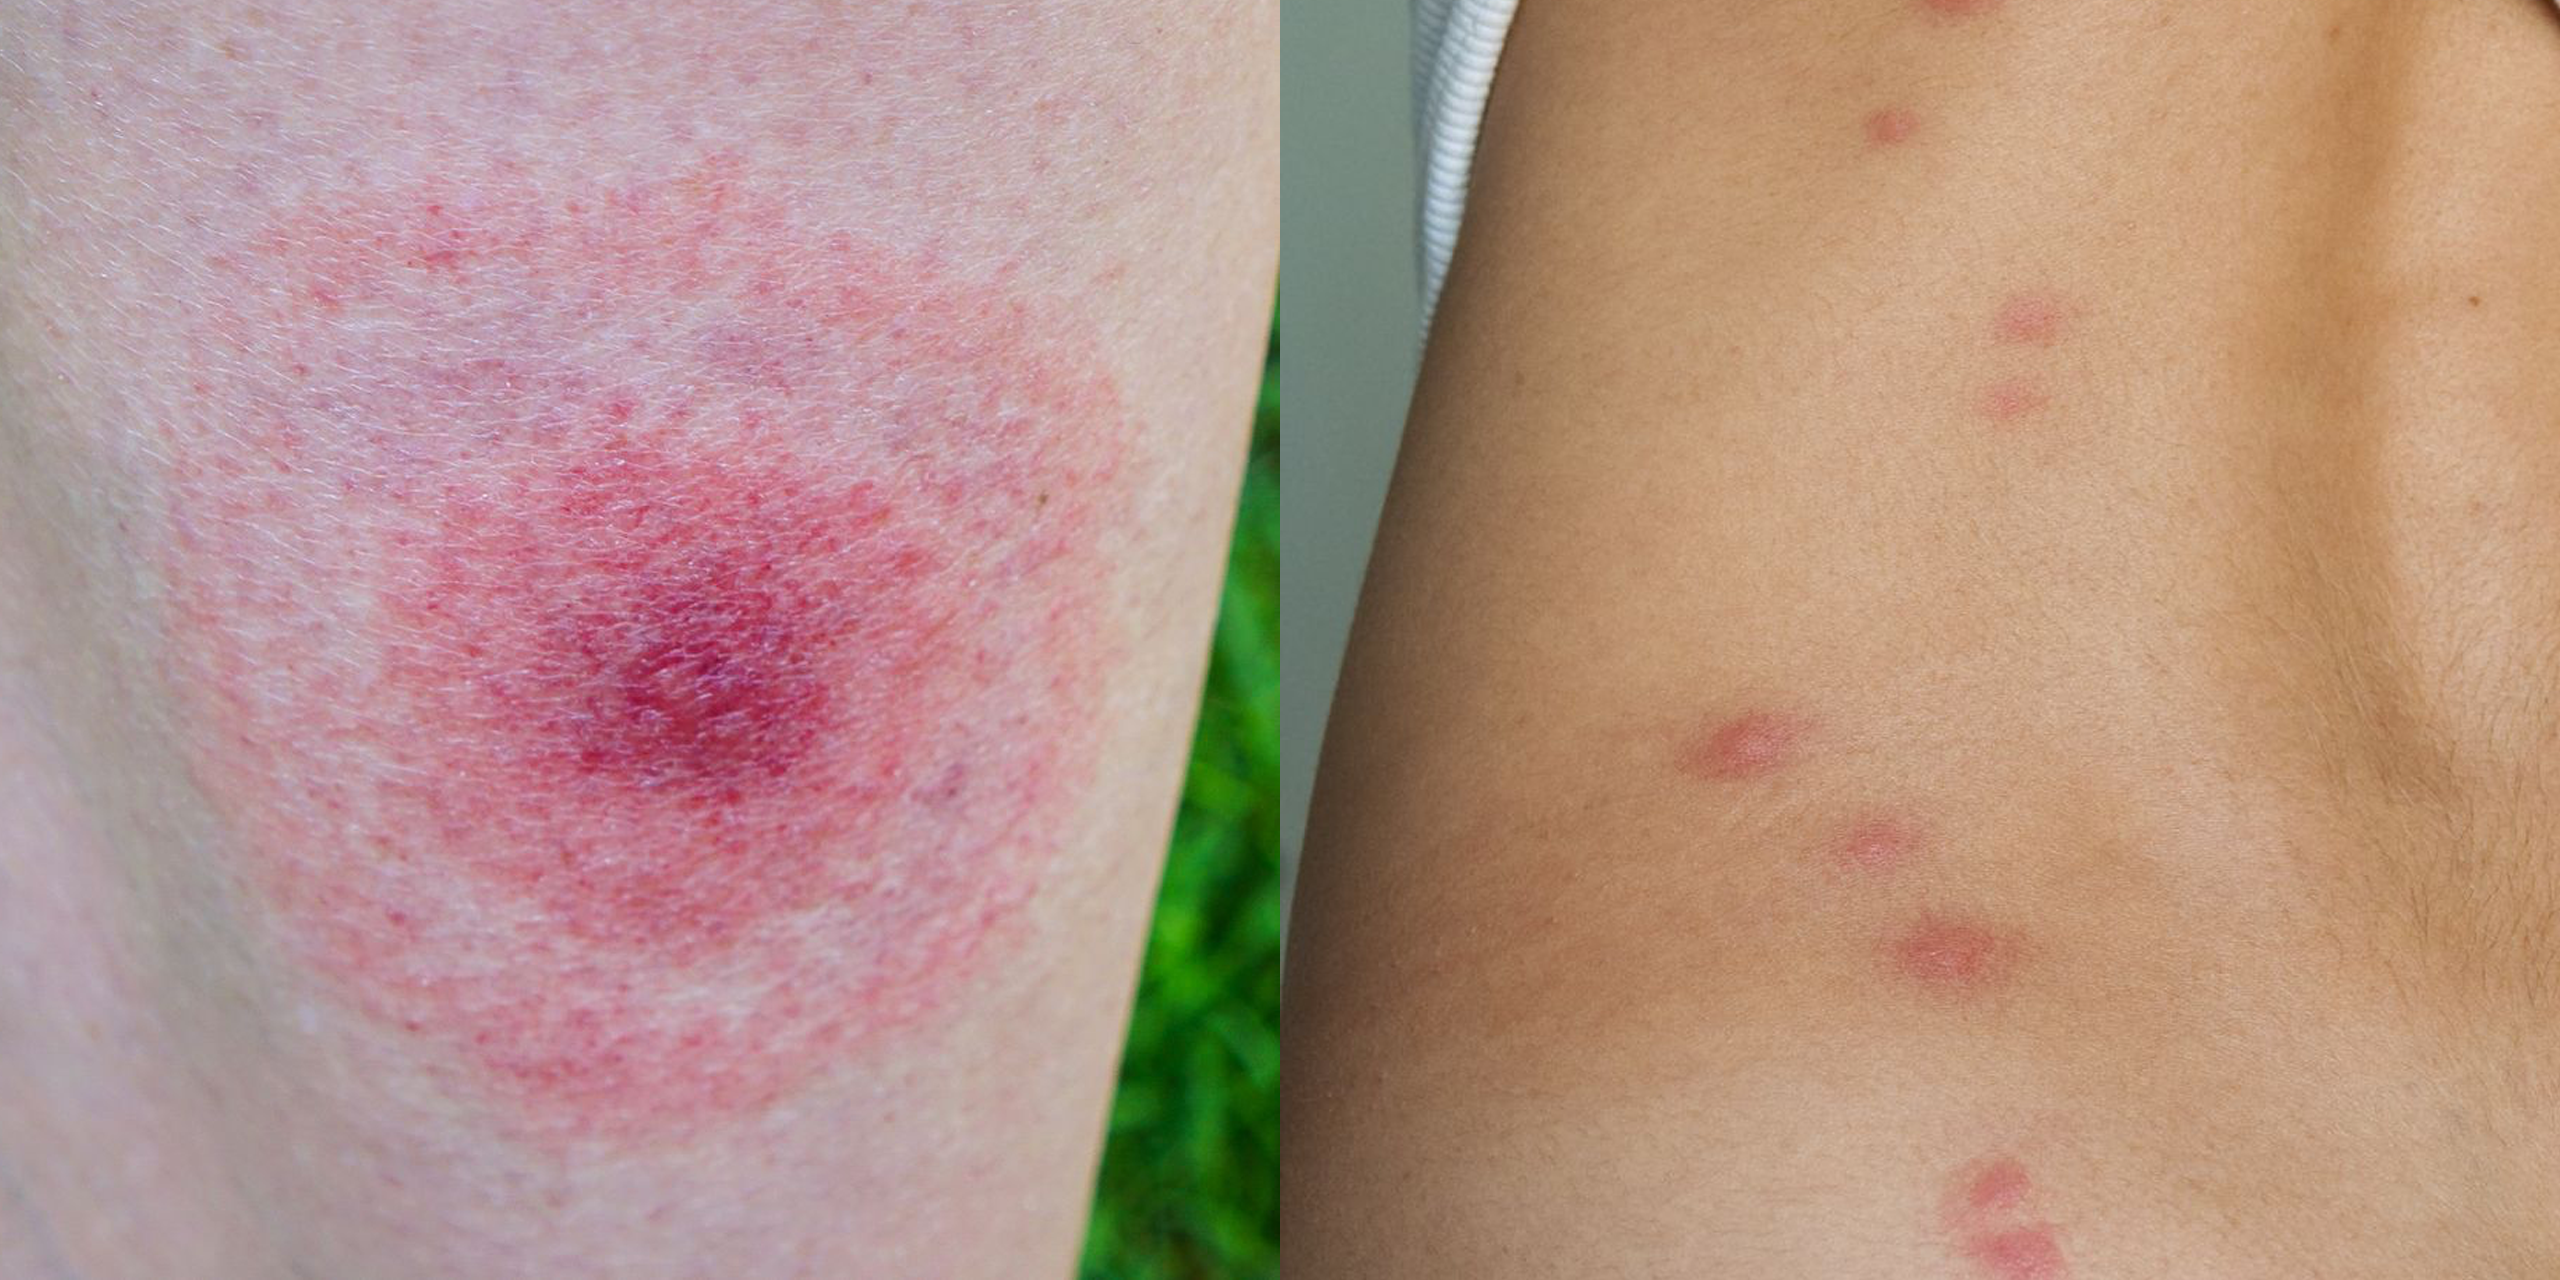 11 Common Bug Bite Pictures - How to ID Insect Bites and Stings